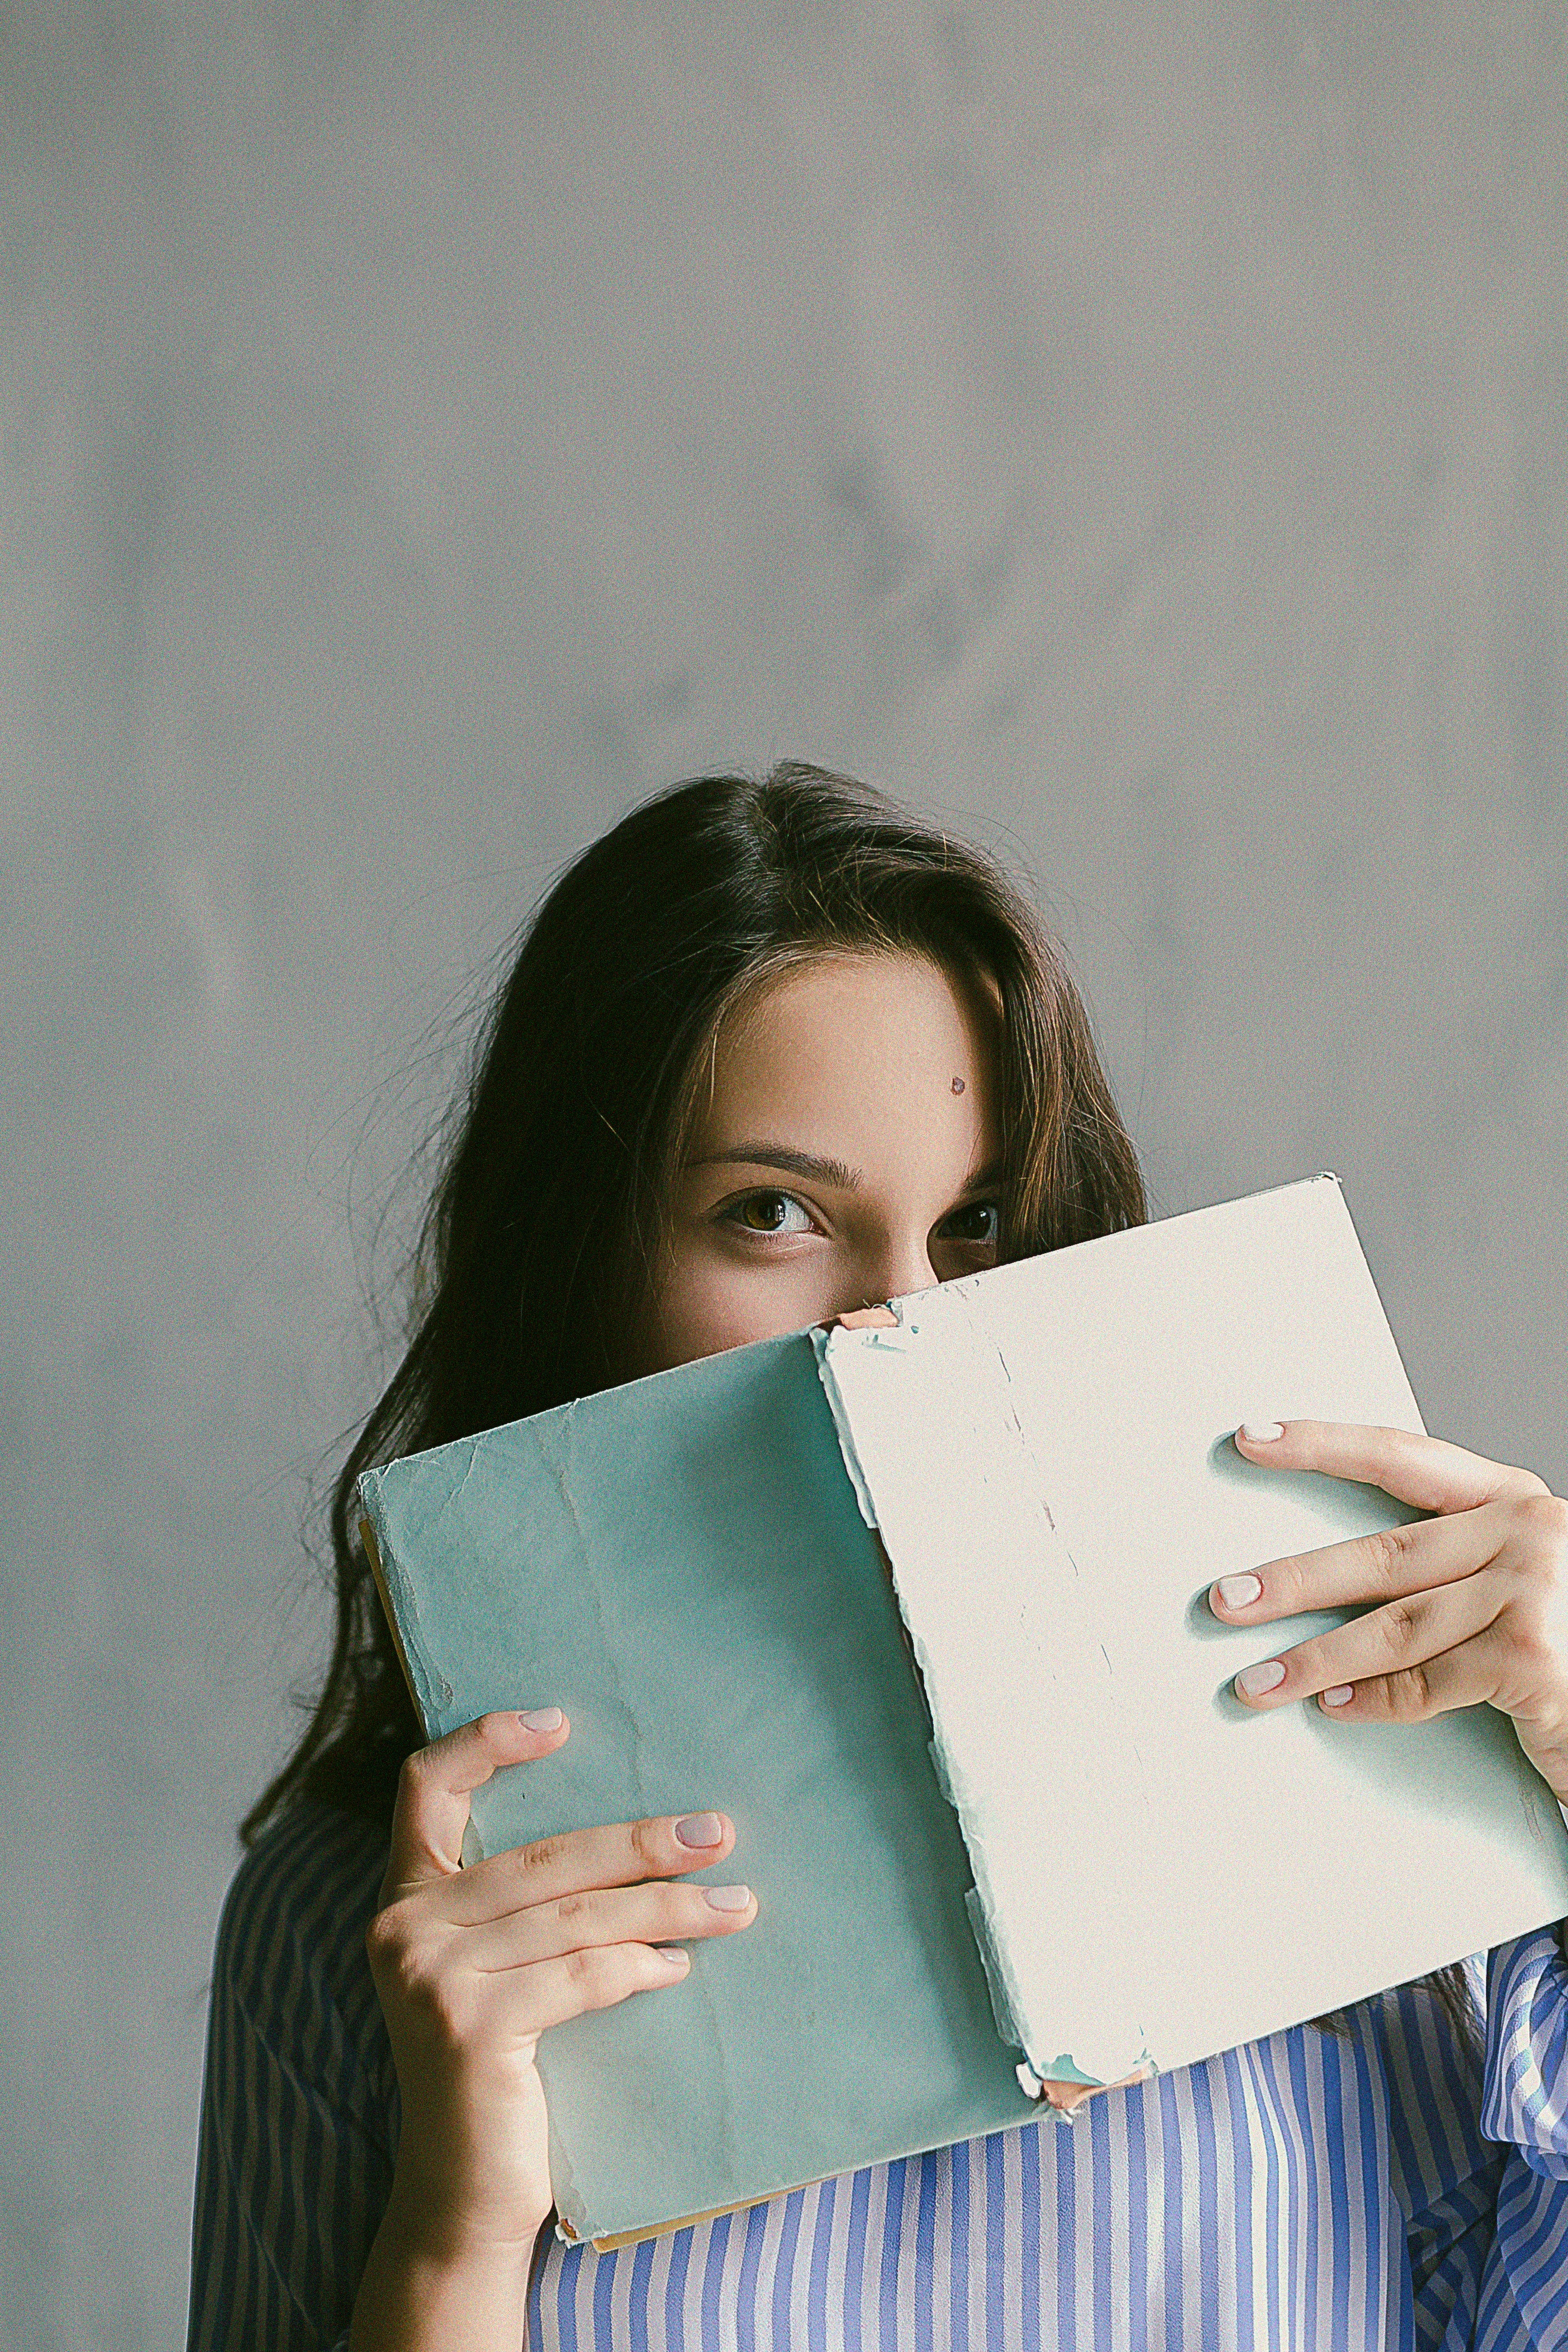 Woman in Blue Striped Flannel Shirt Holding a Book Indoors, Person, Woman, Wear, Stripes, HQ Photo